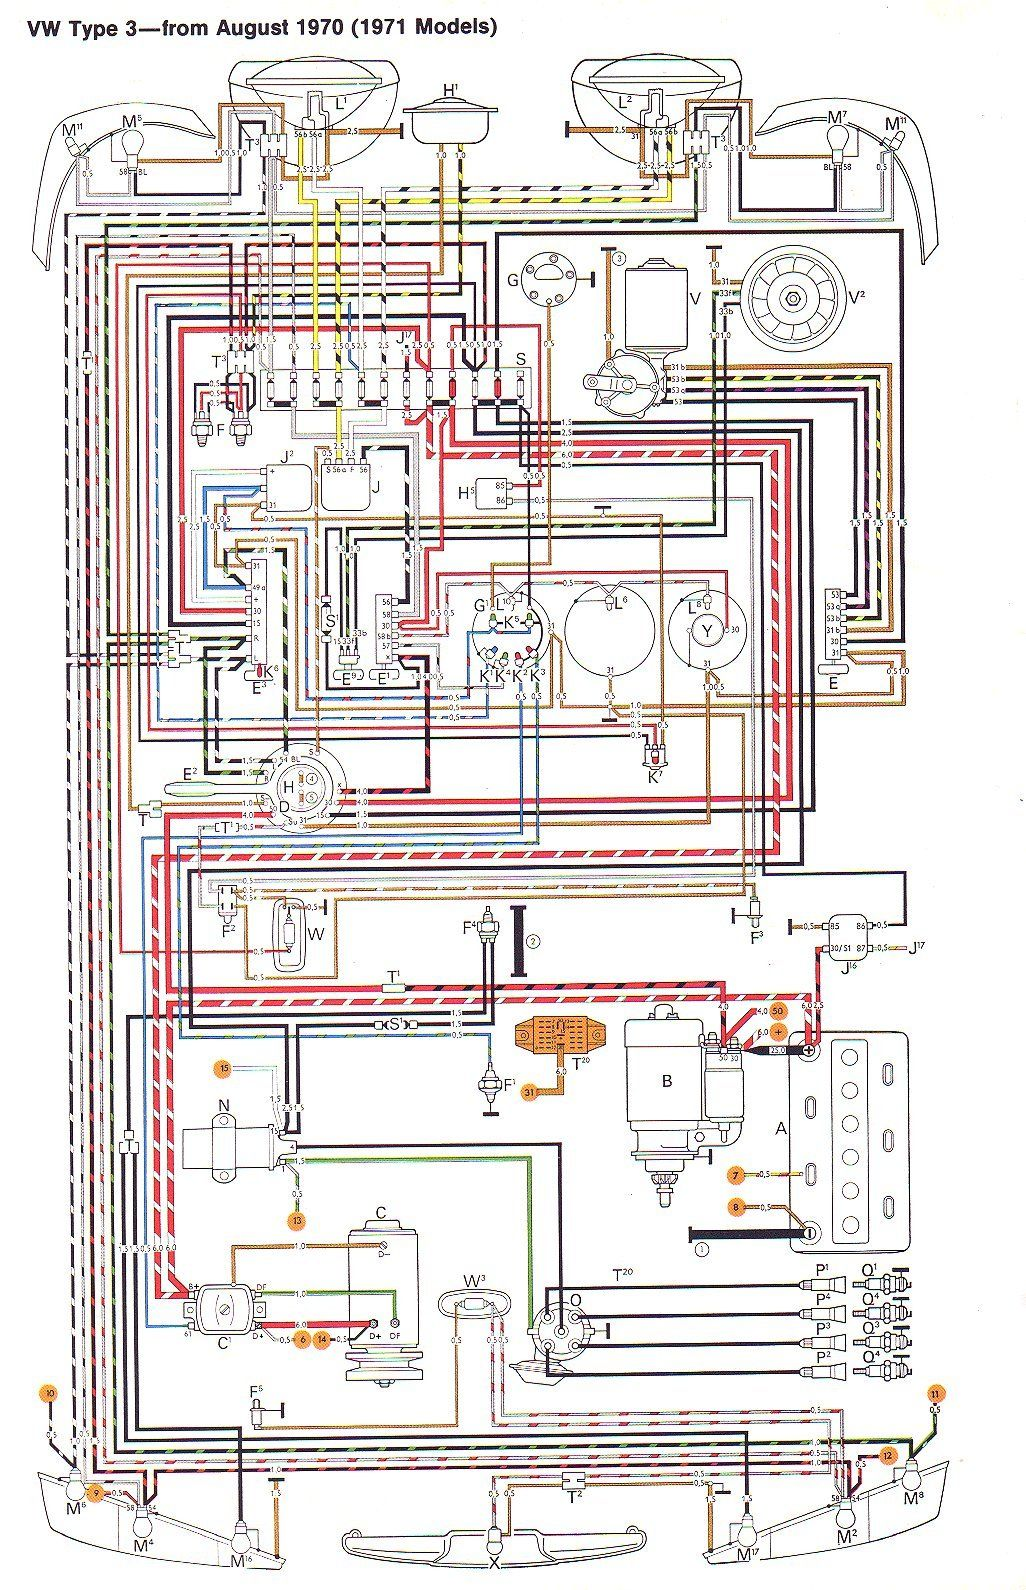 e0db58370f79a63d02d45f00cf63f44a 71 vw t3 wiring diagram ruthie pinterest volkswagen, engine Simple Electrical Wiring Diagrams at readyjetset.co